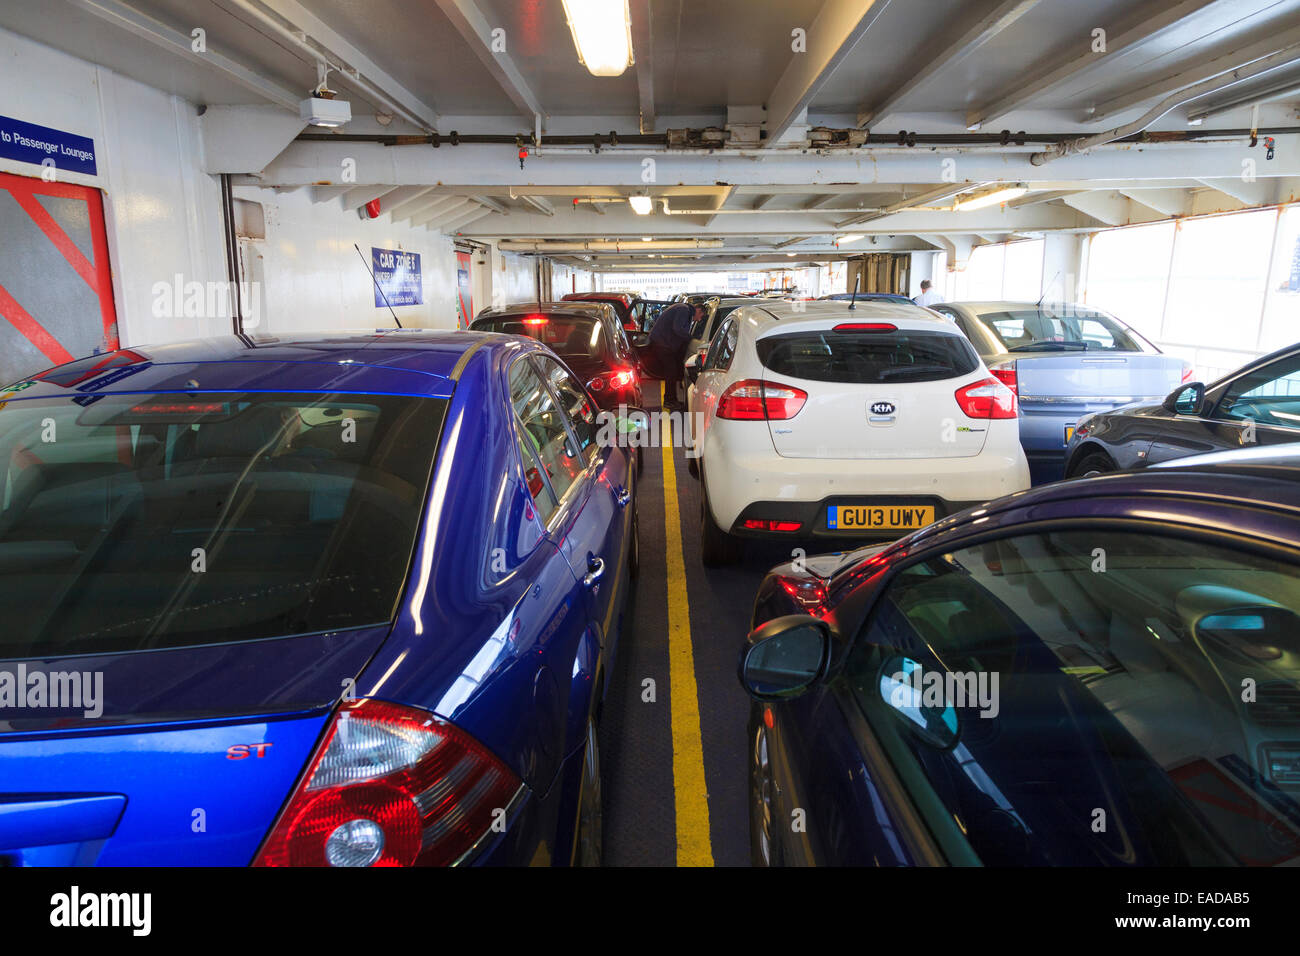 Restricted height car deck on ferry Stock Photo